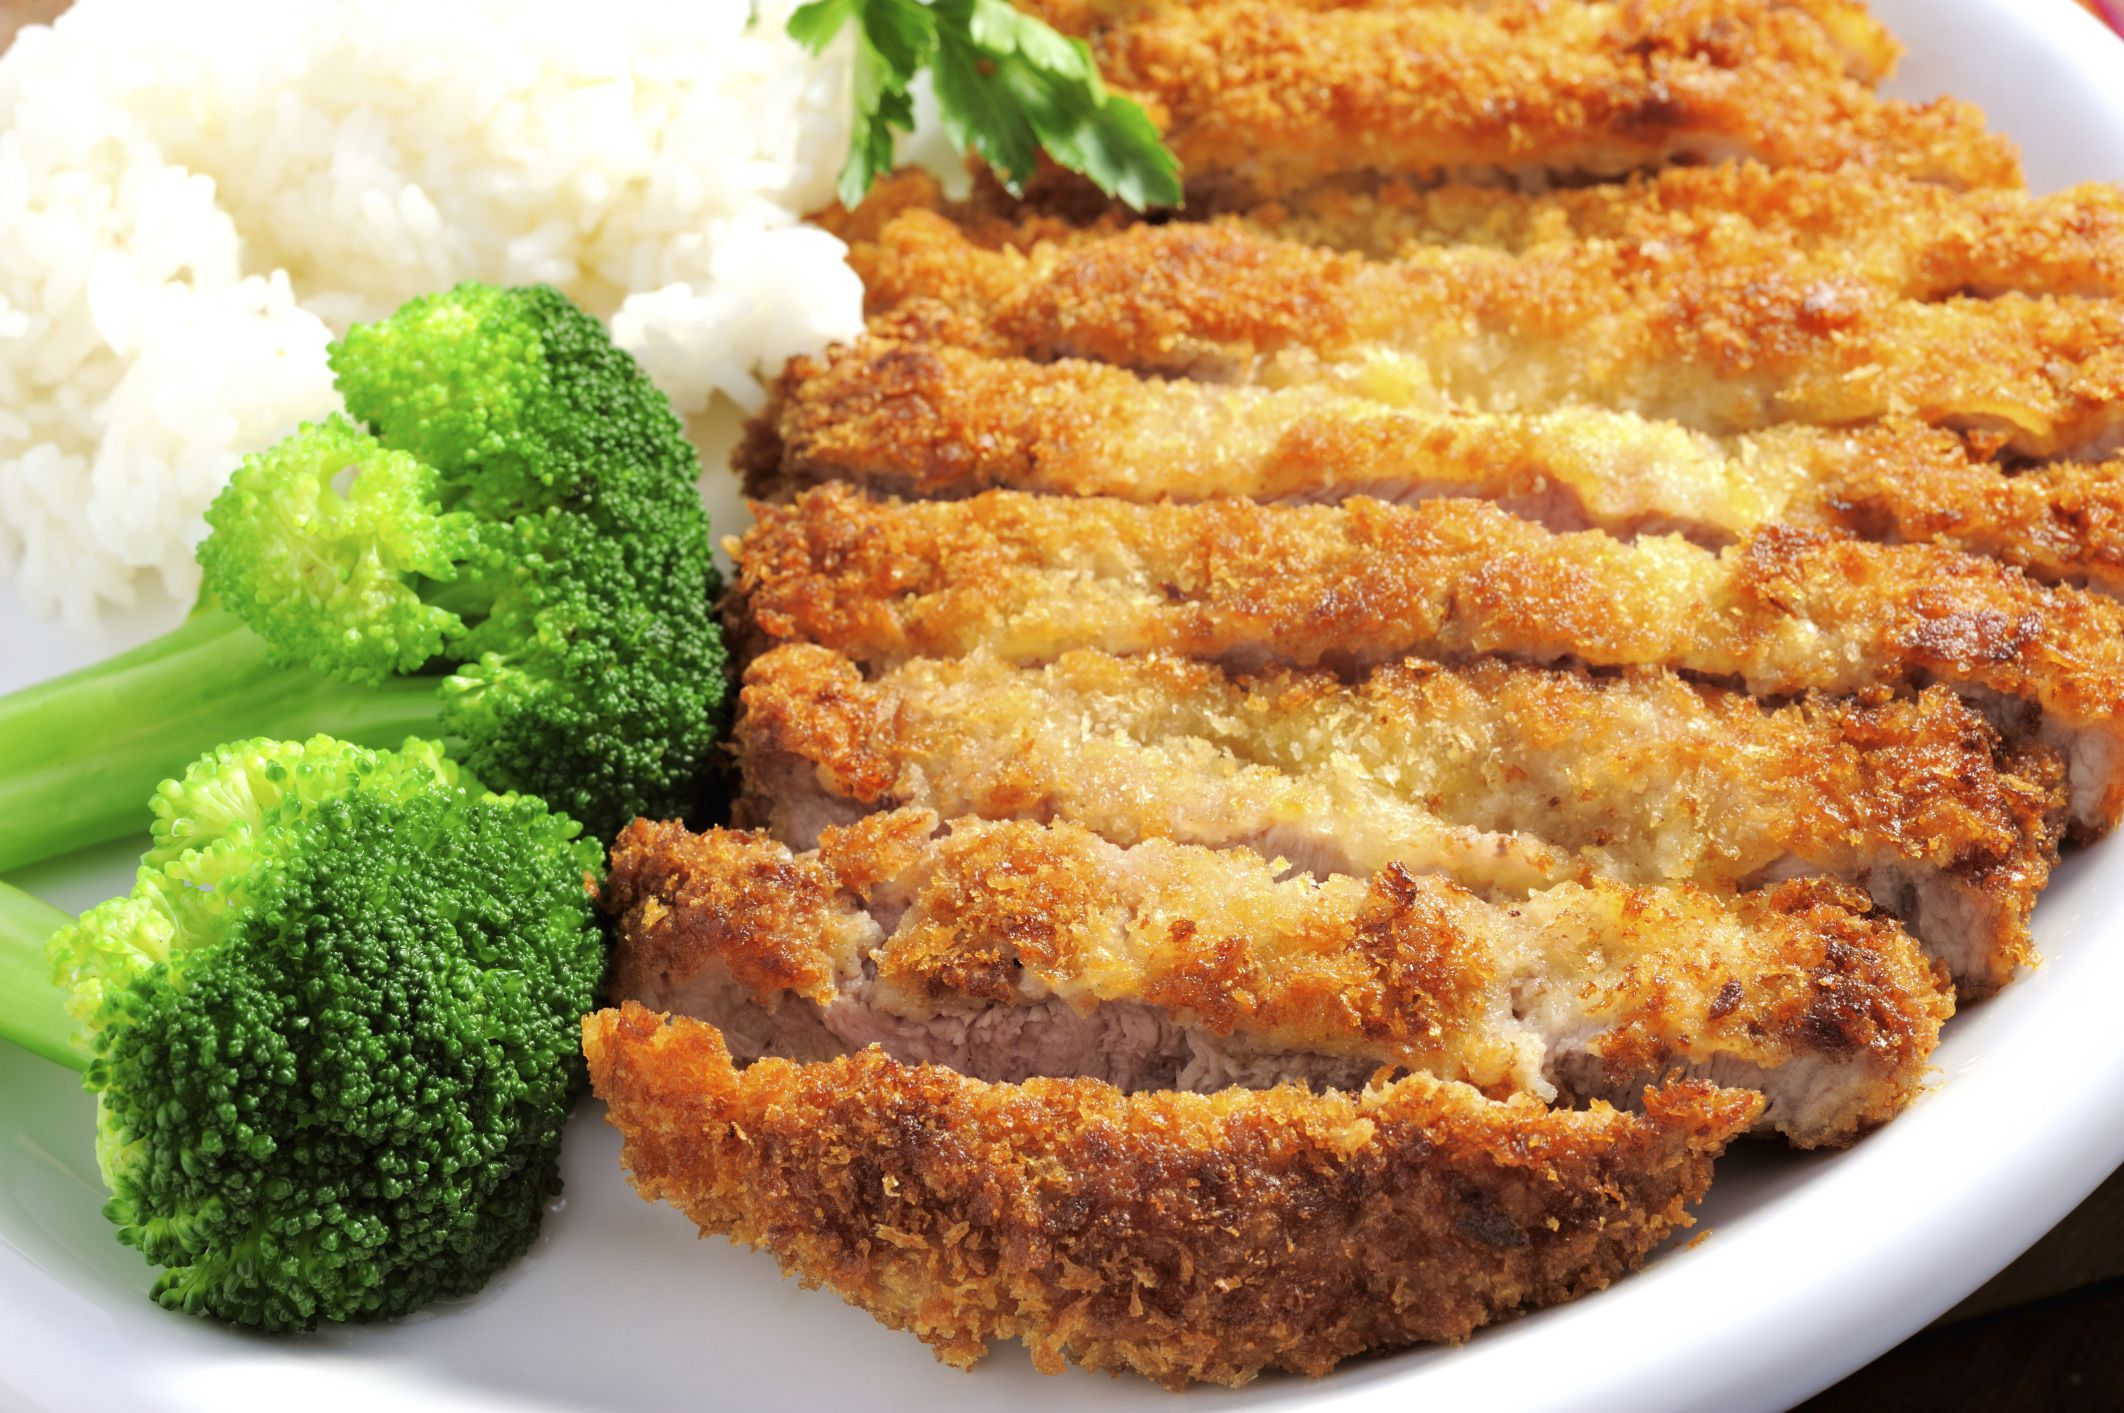 Breaded Baked Pork Chops With Rice And Broccoli Recipe